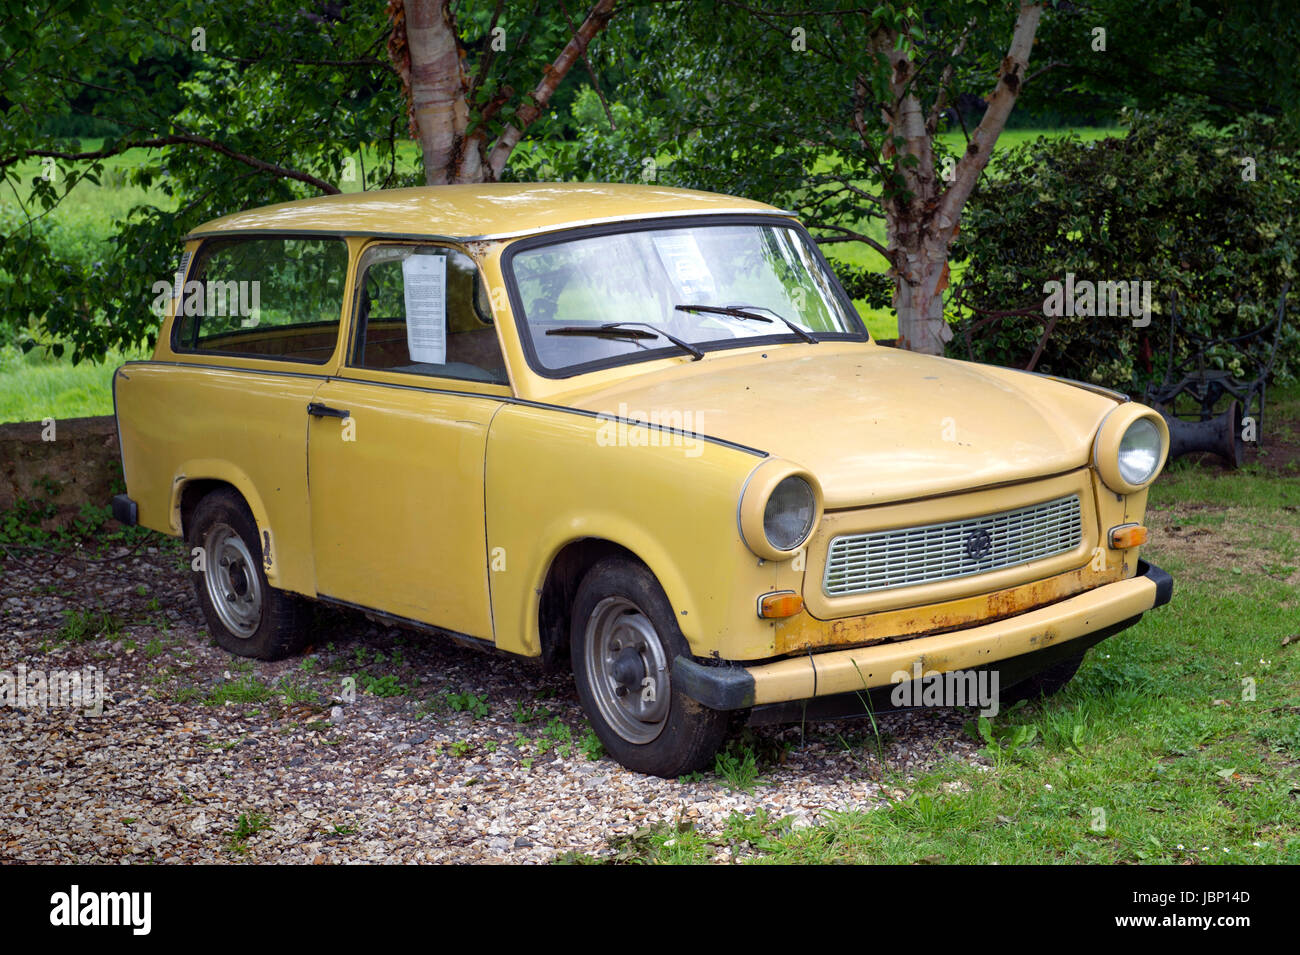 Trabant Clipart Plastic Cars Stock Photos Plastic Cars Stock Images Alamy